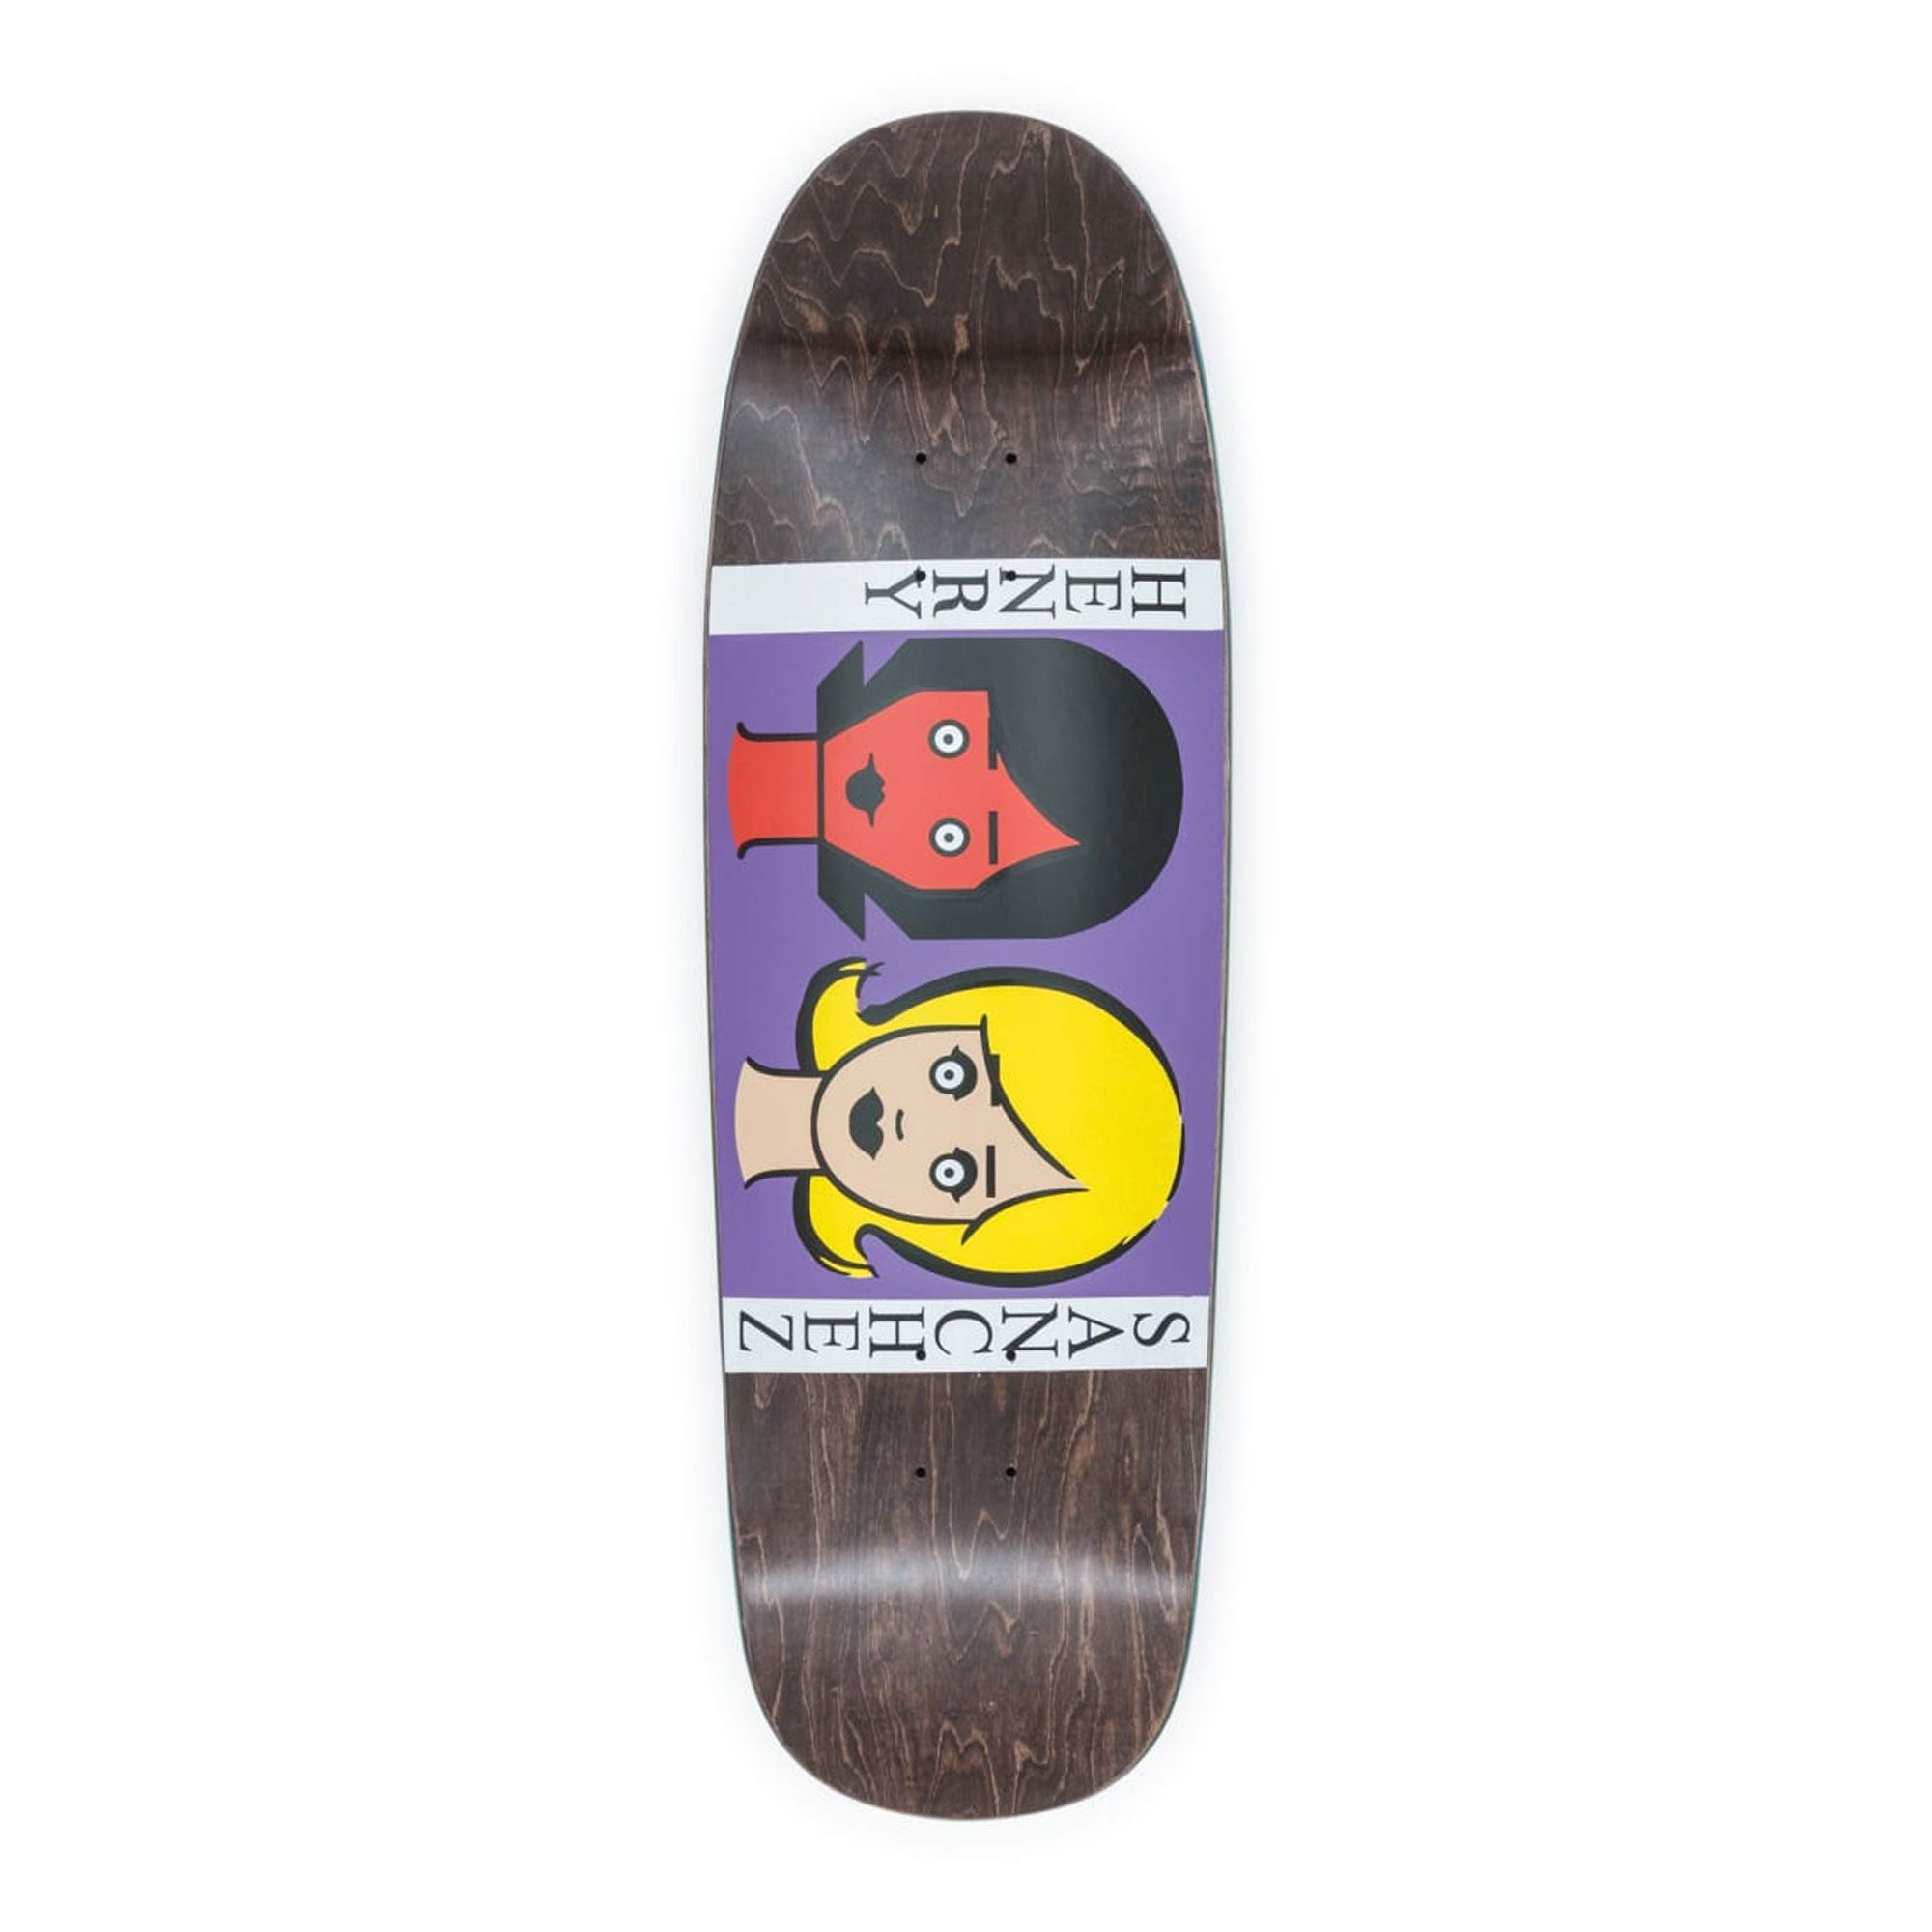 Blind Sanchez Two Girls Hand Screened Deck Product Photo #1